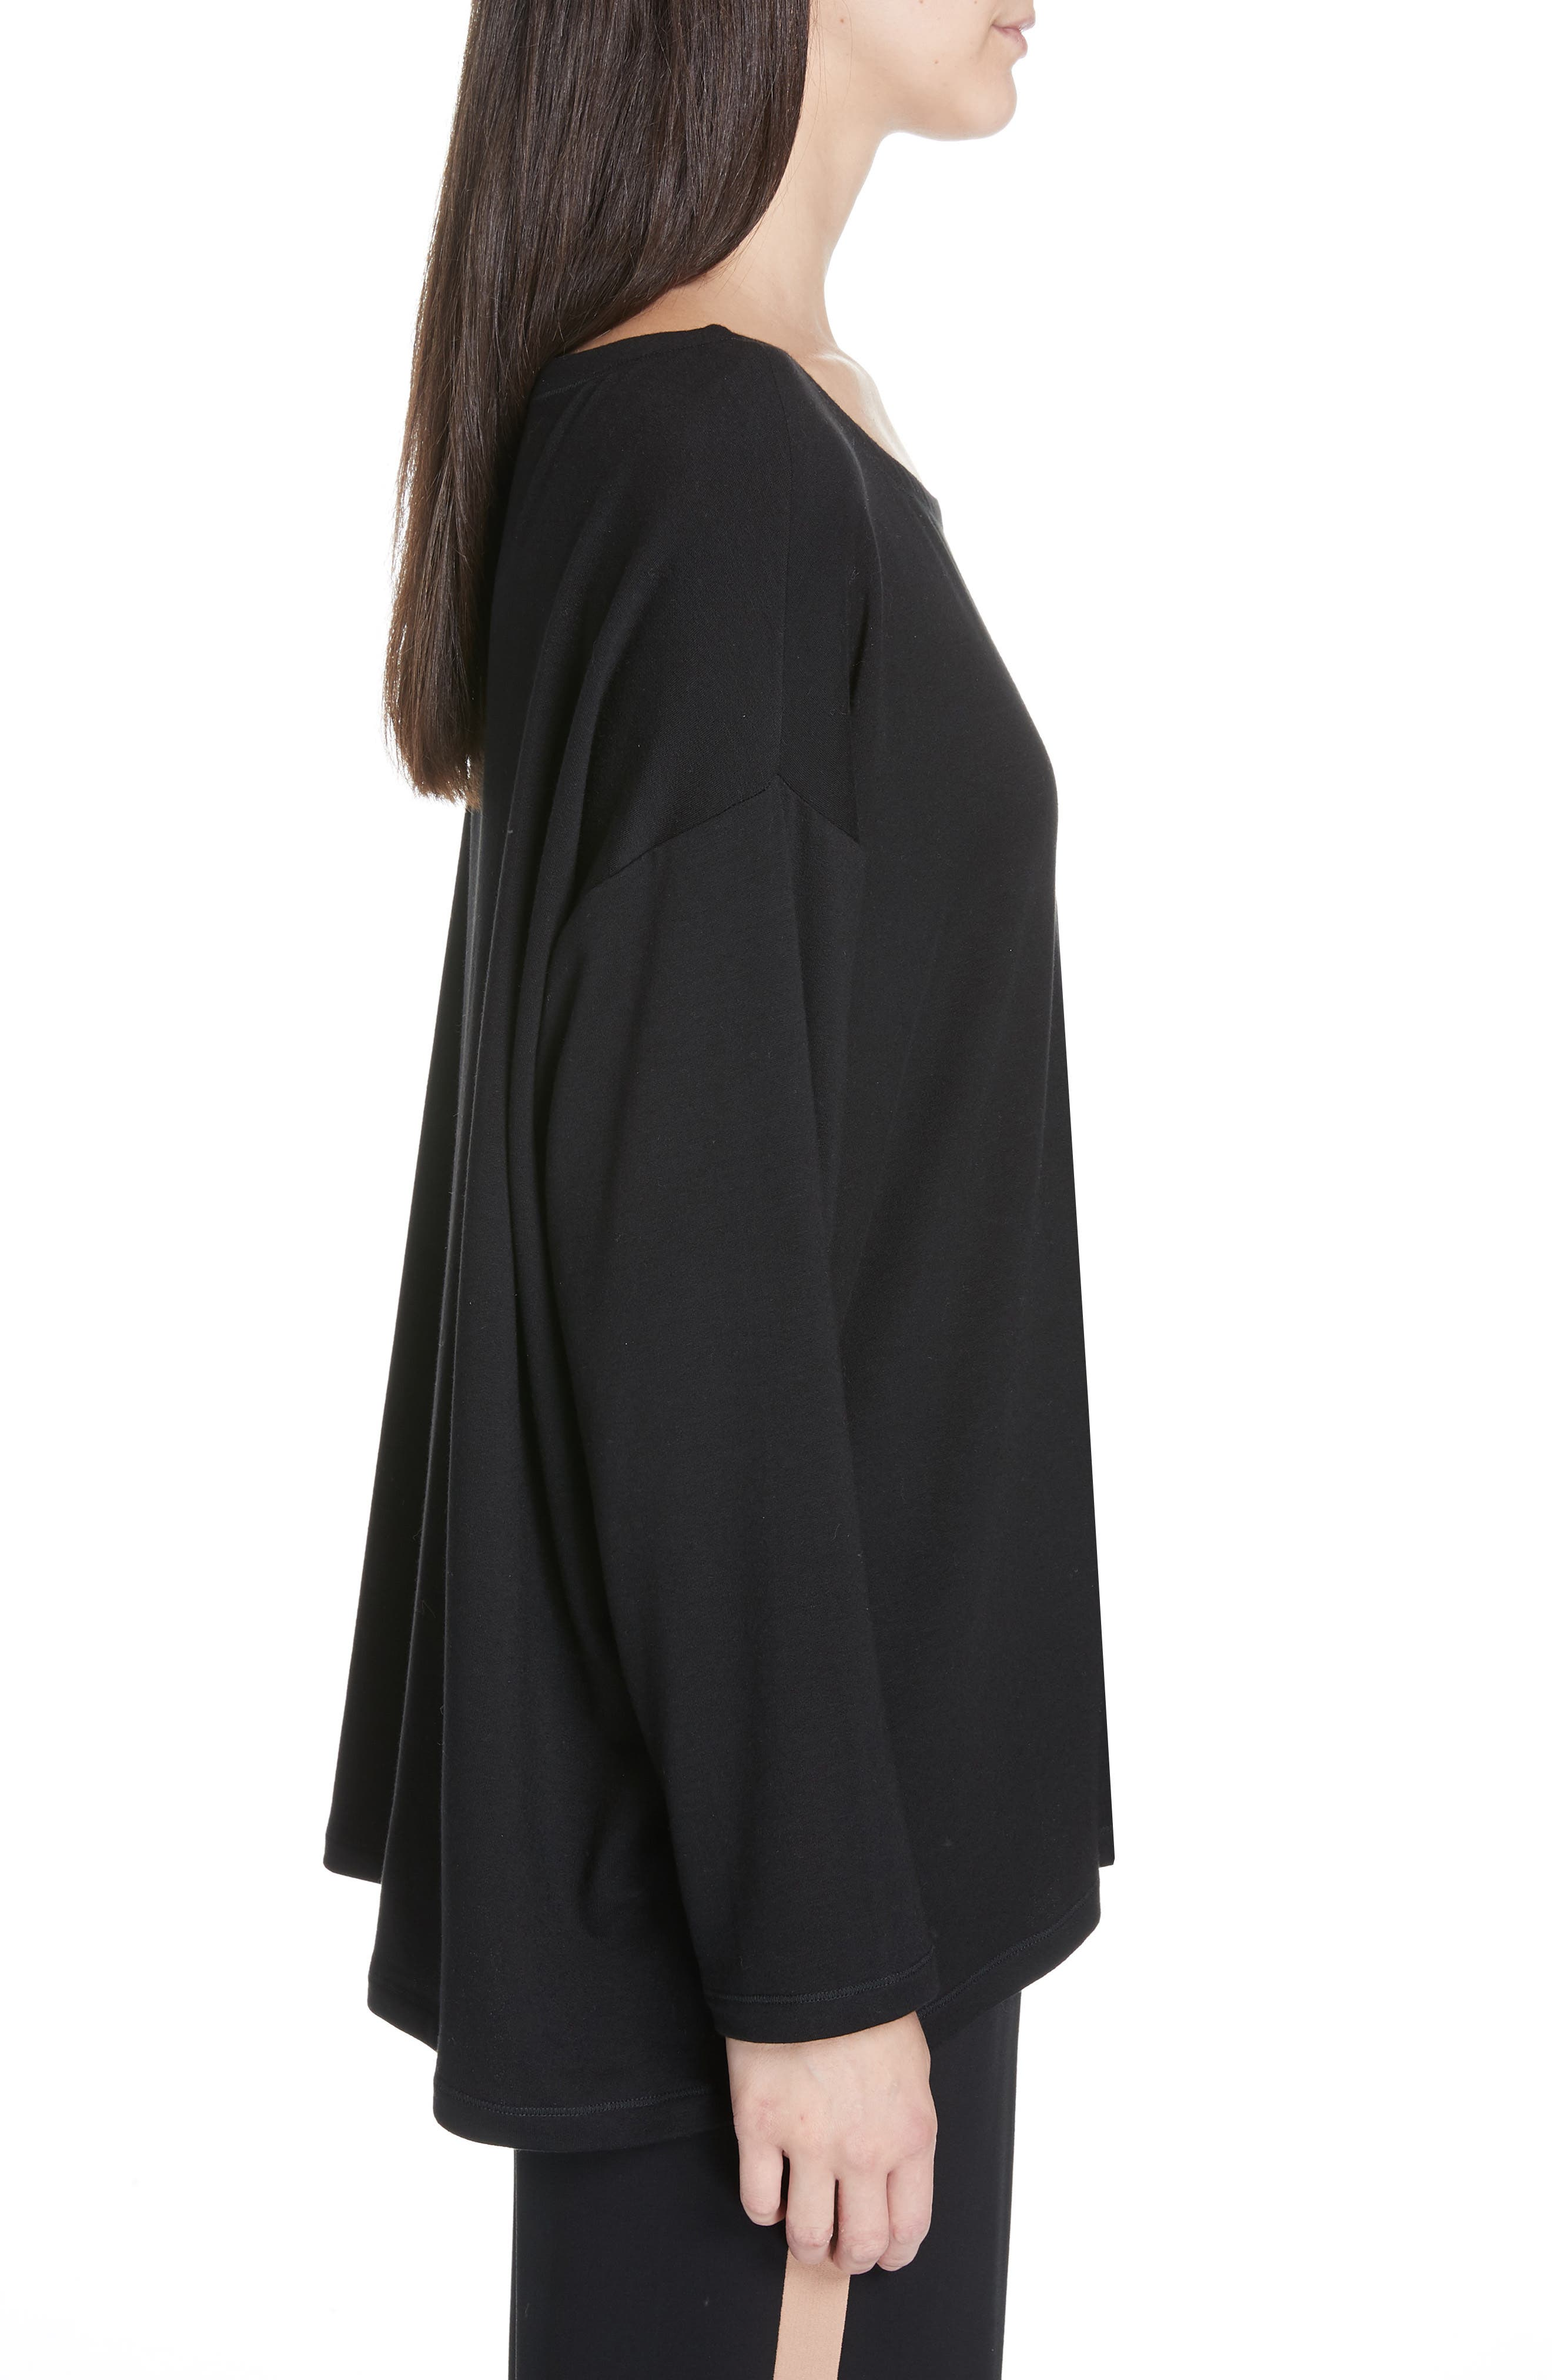 EILEEN FISHER, Stretch Terry Top, Alternate thumbnail 3, color, BLACK